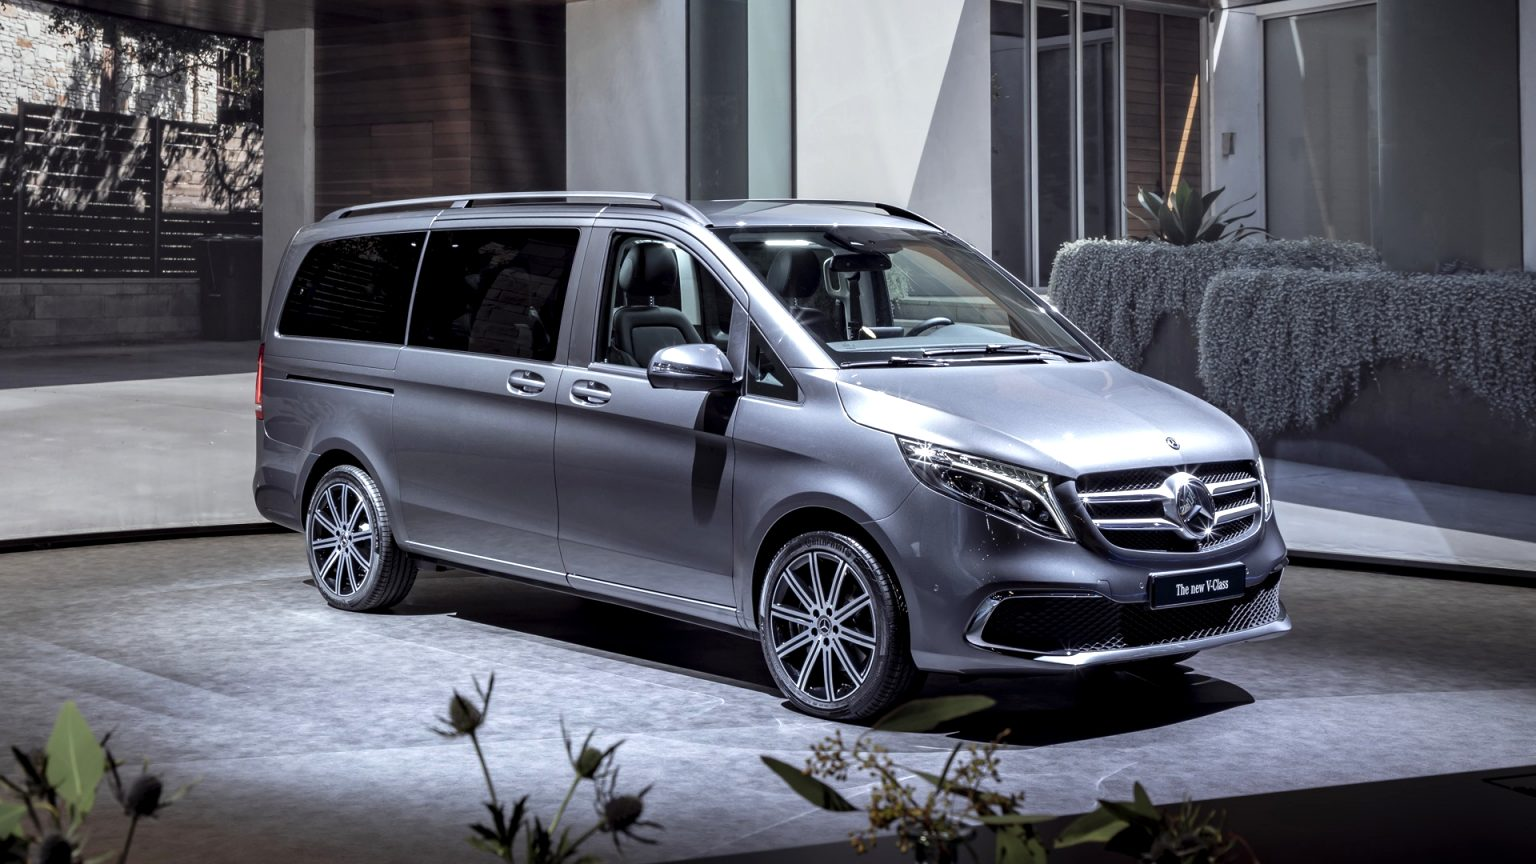 2021 mercedes v class price Release Date and Concept